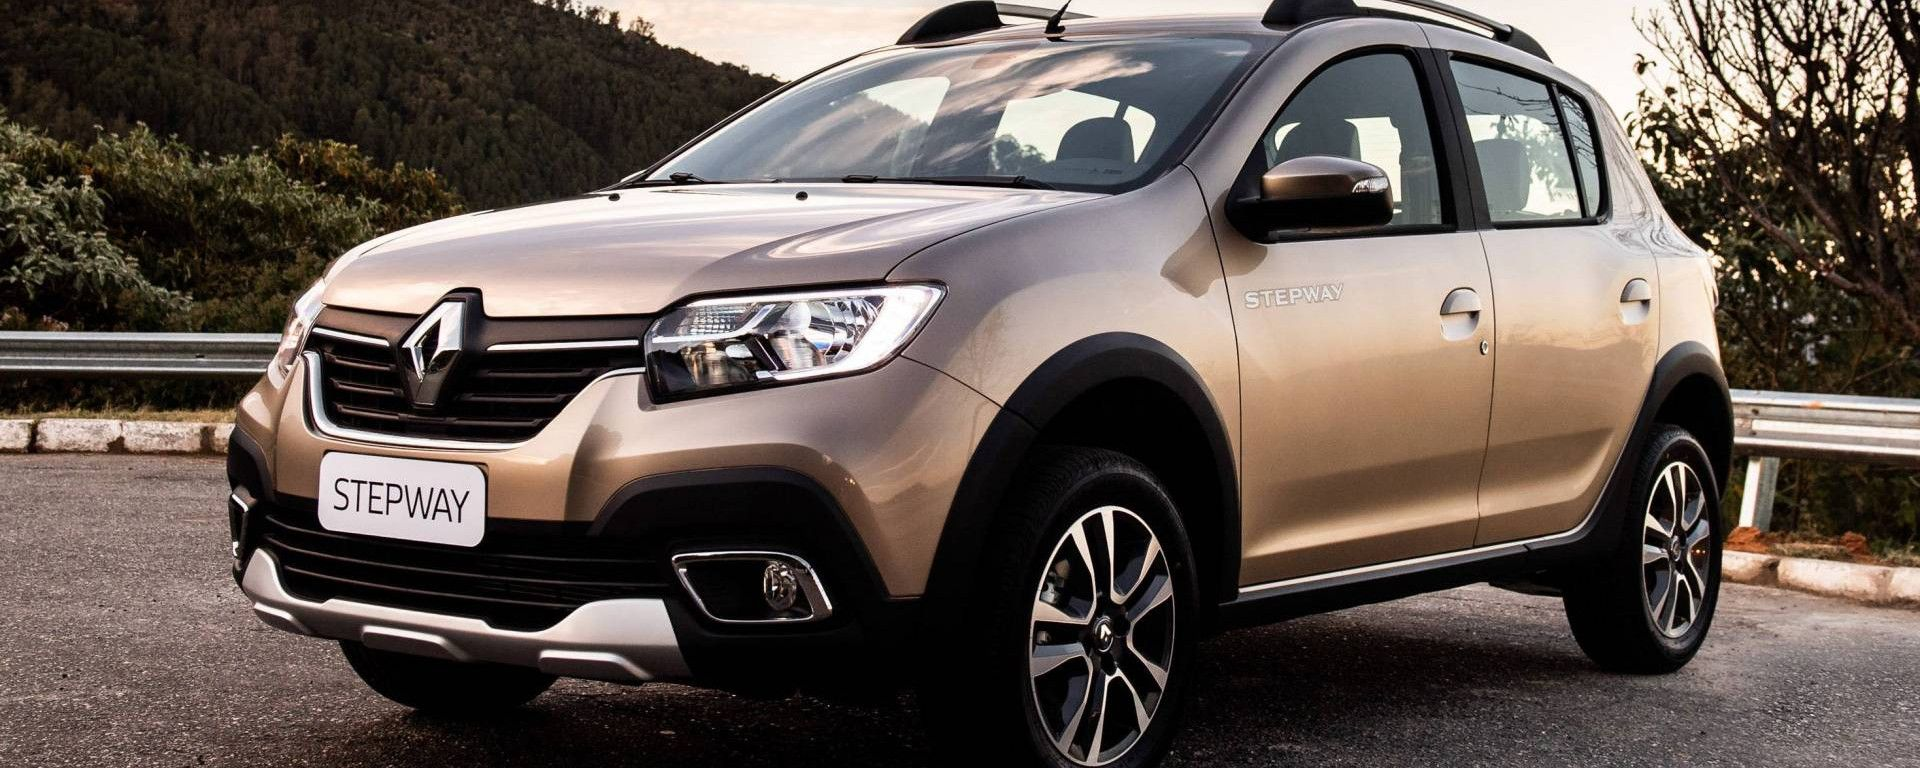 Dacia Stepway 2020: nuovo frontale con luci a led